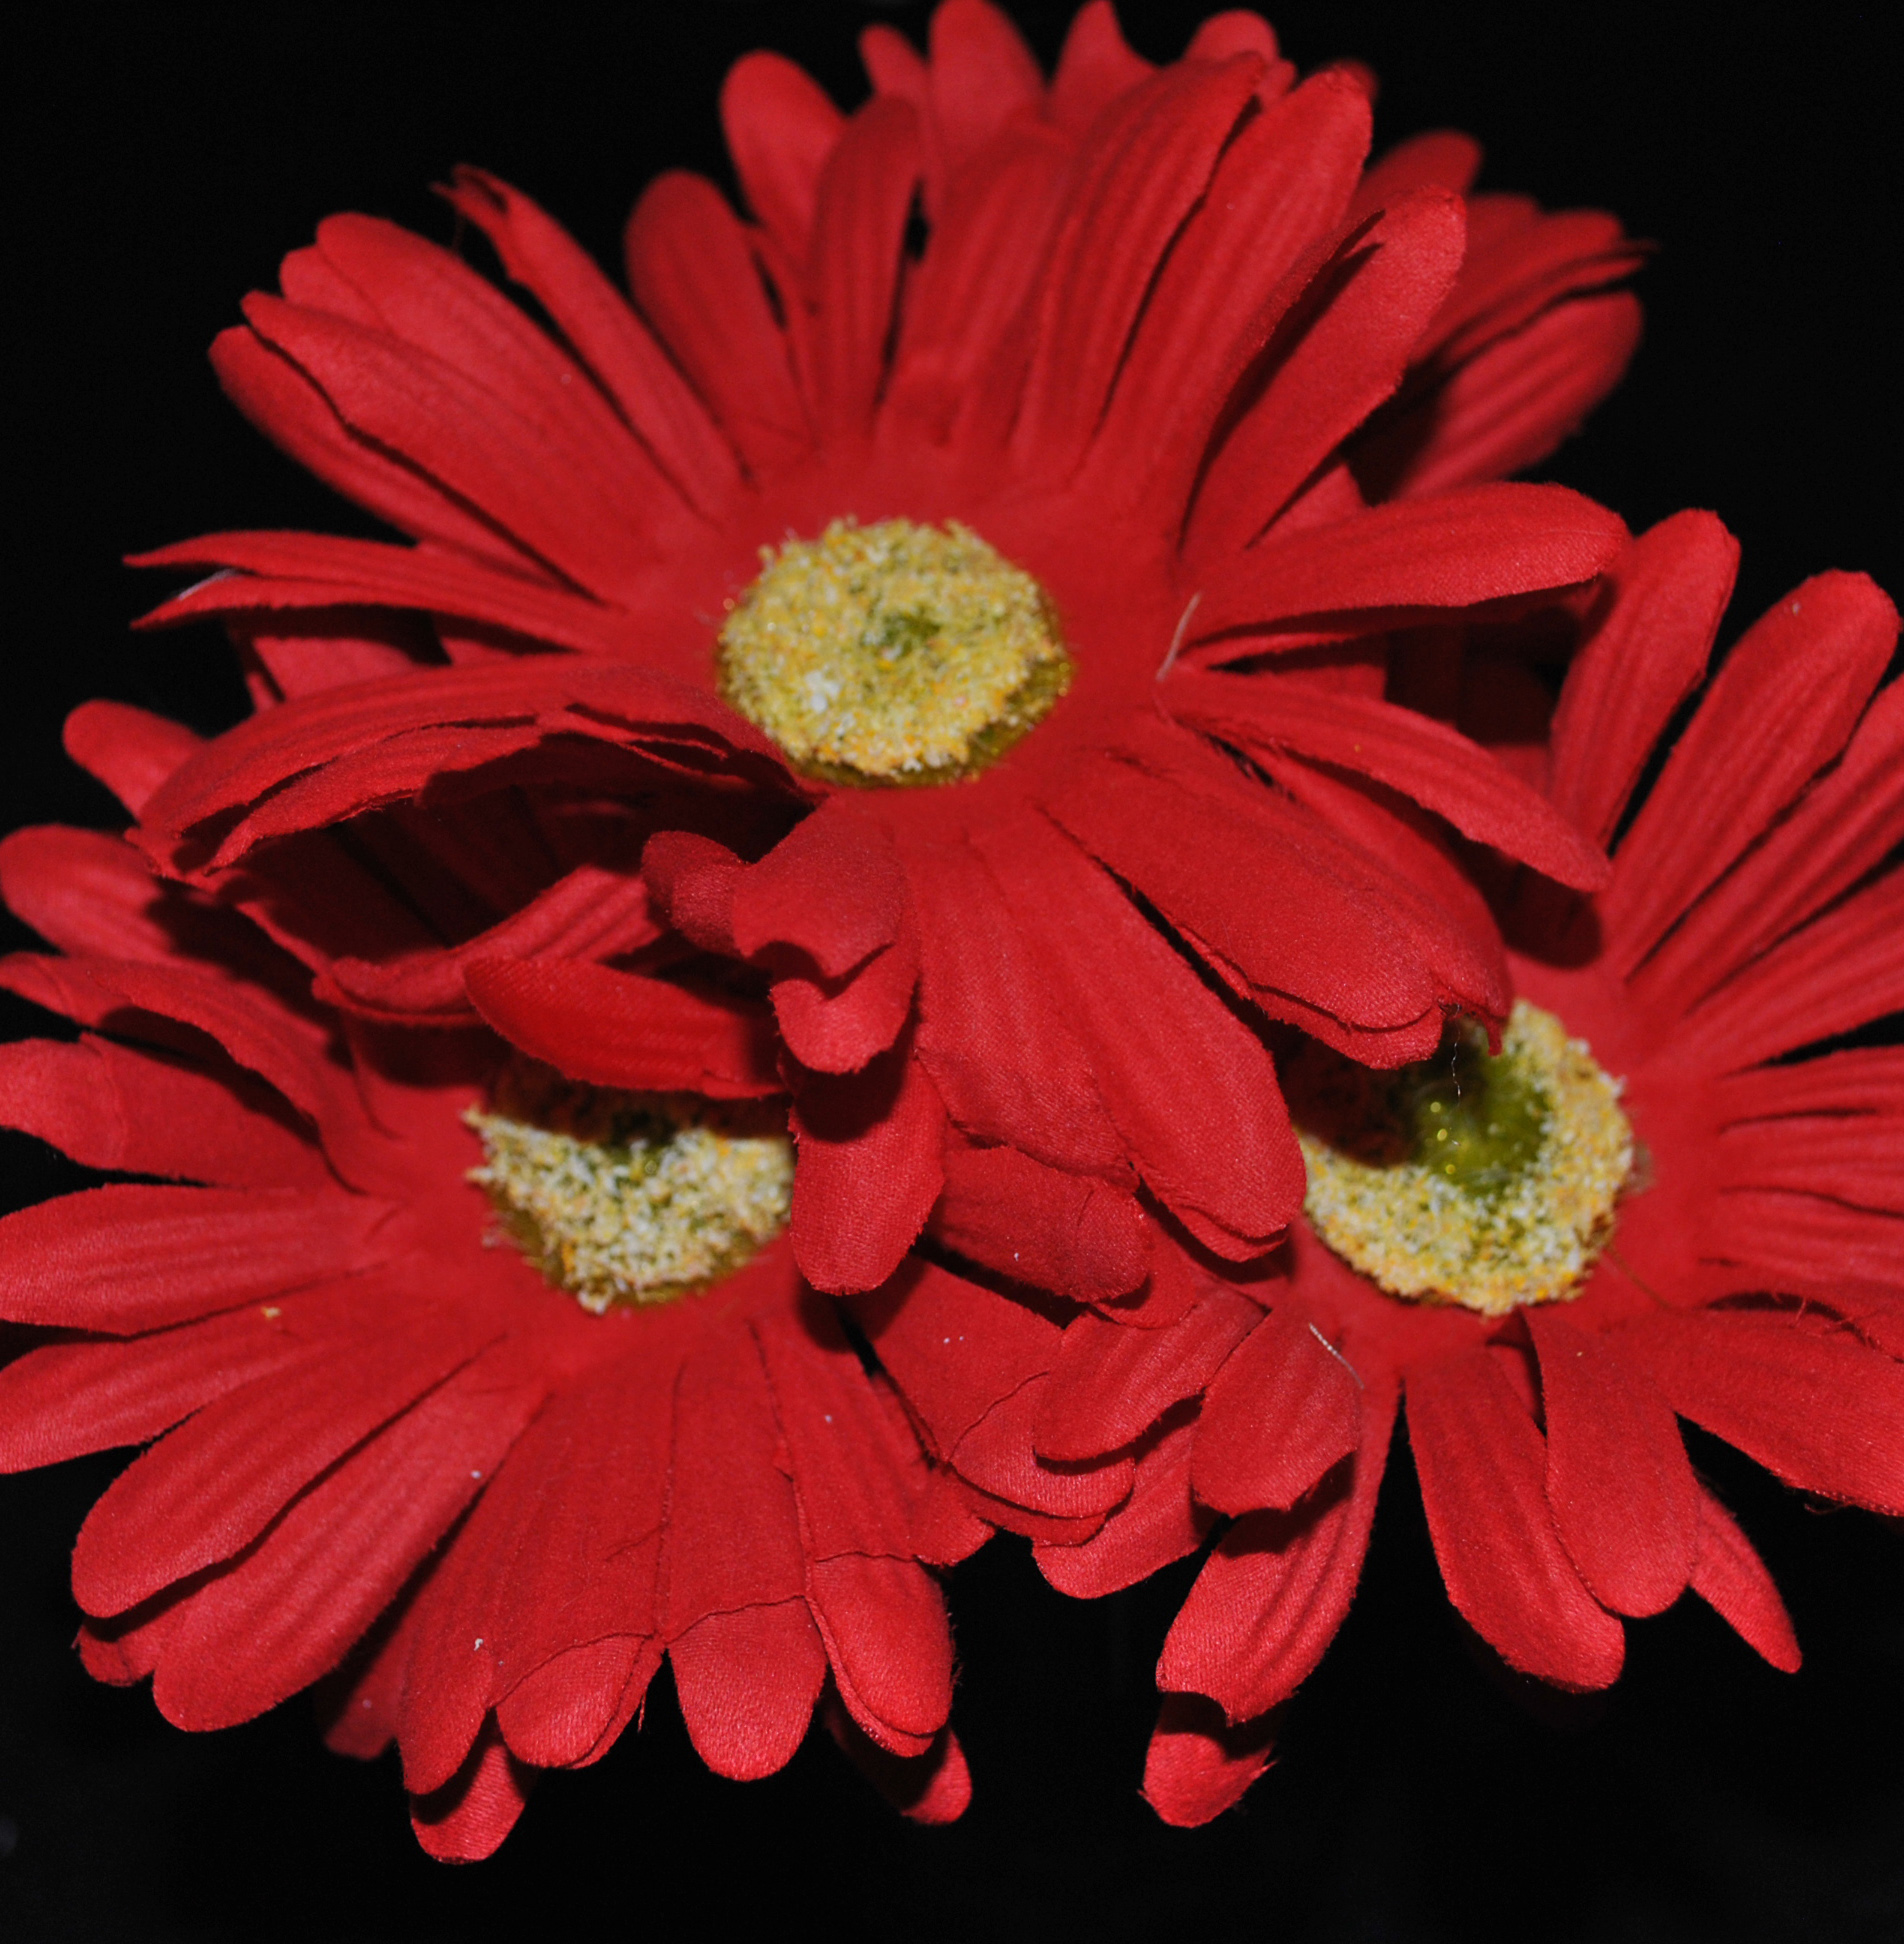 Red gerbera daisy pen katies flower pens red gerbera daisy izmirmasajfo